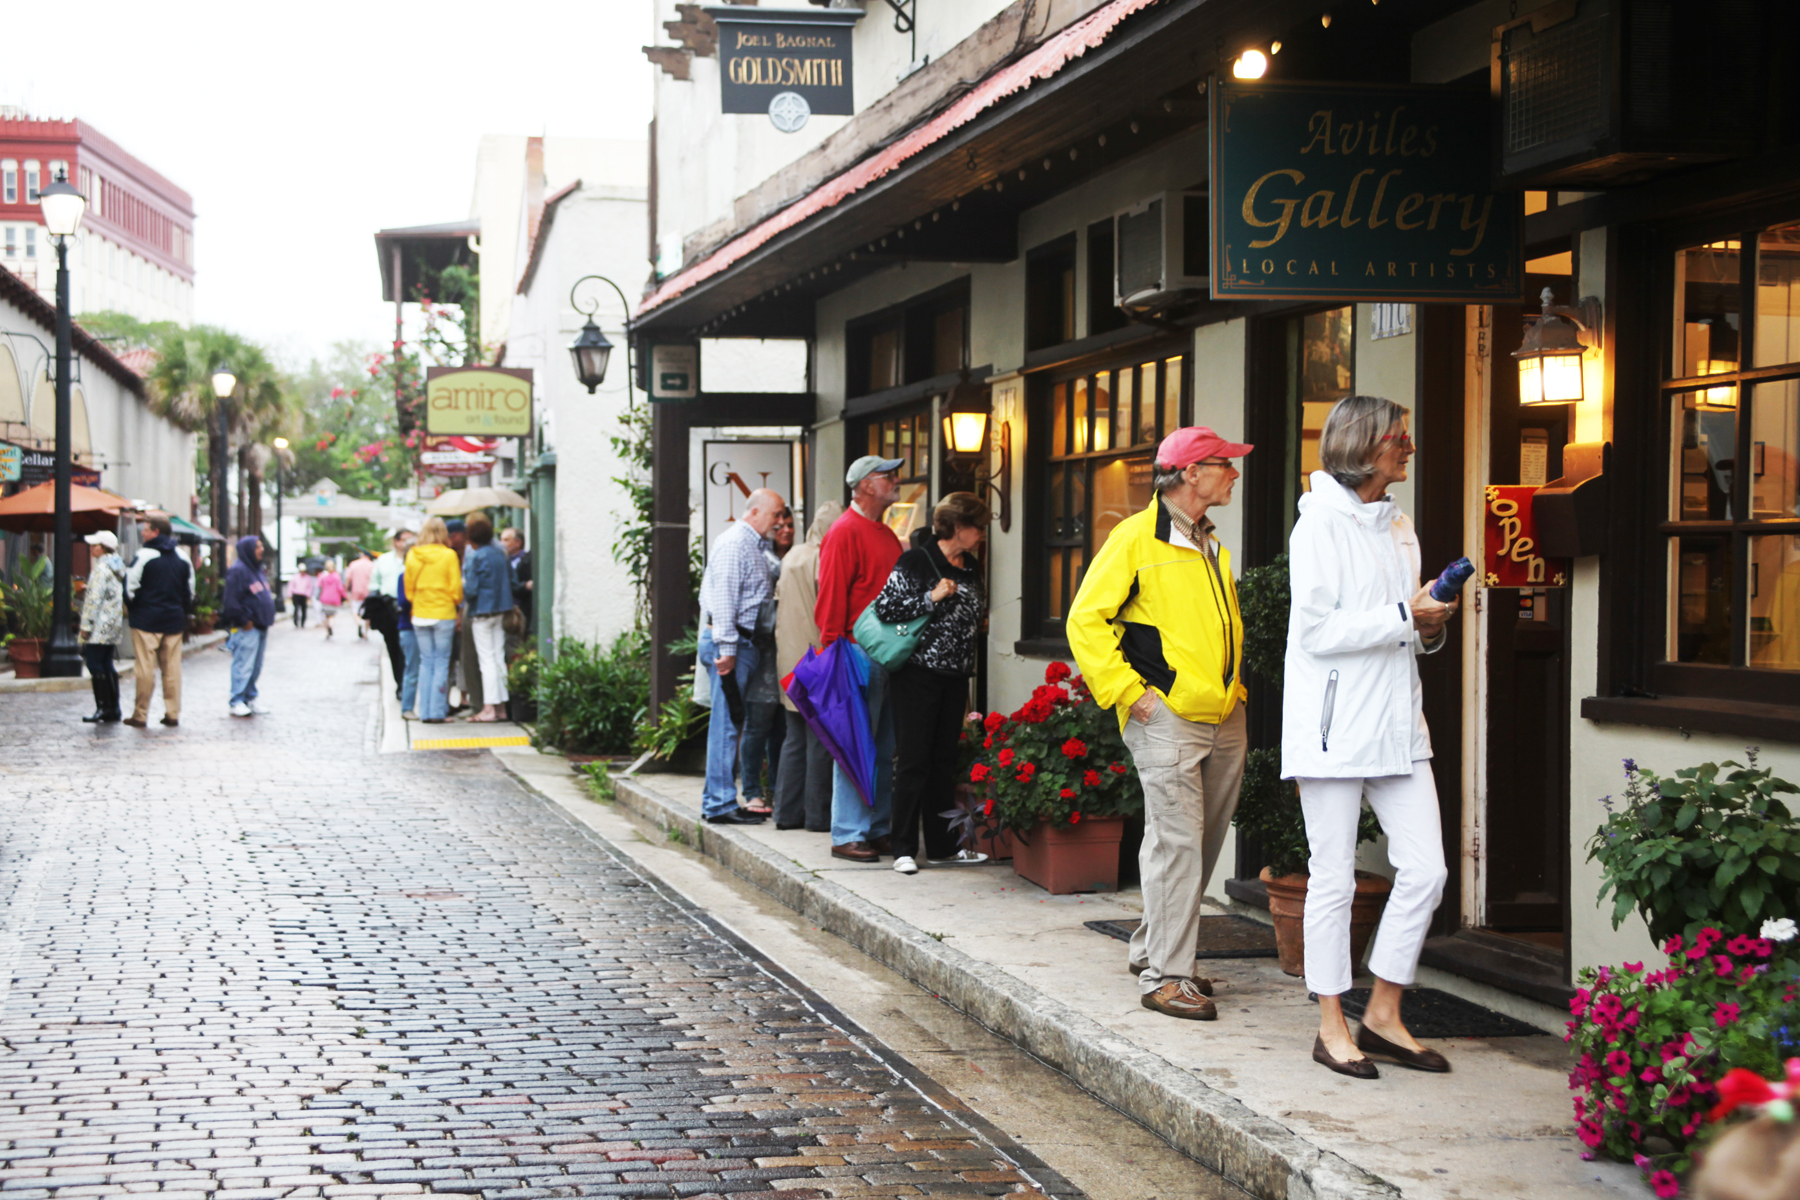 First Friday Art Walk is from 5 to 9 p.m. Friday, Feb. 6 in St. Augustine galleries. Admission is FREE. See more details in the event listing below. Photo by Renee Unsworth